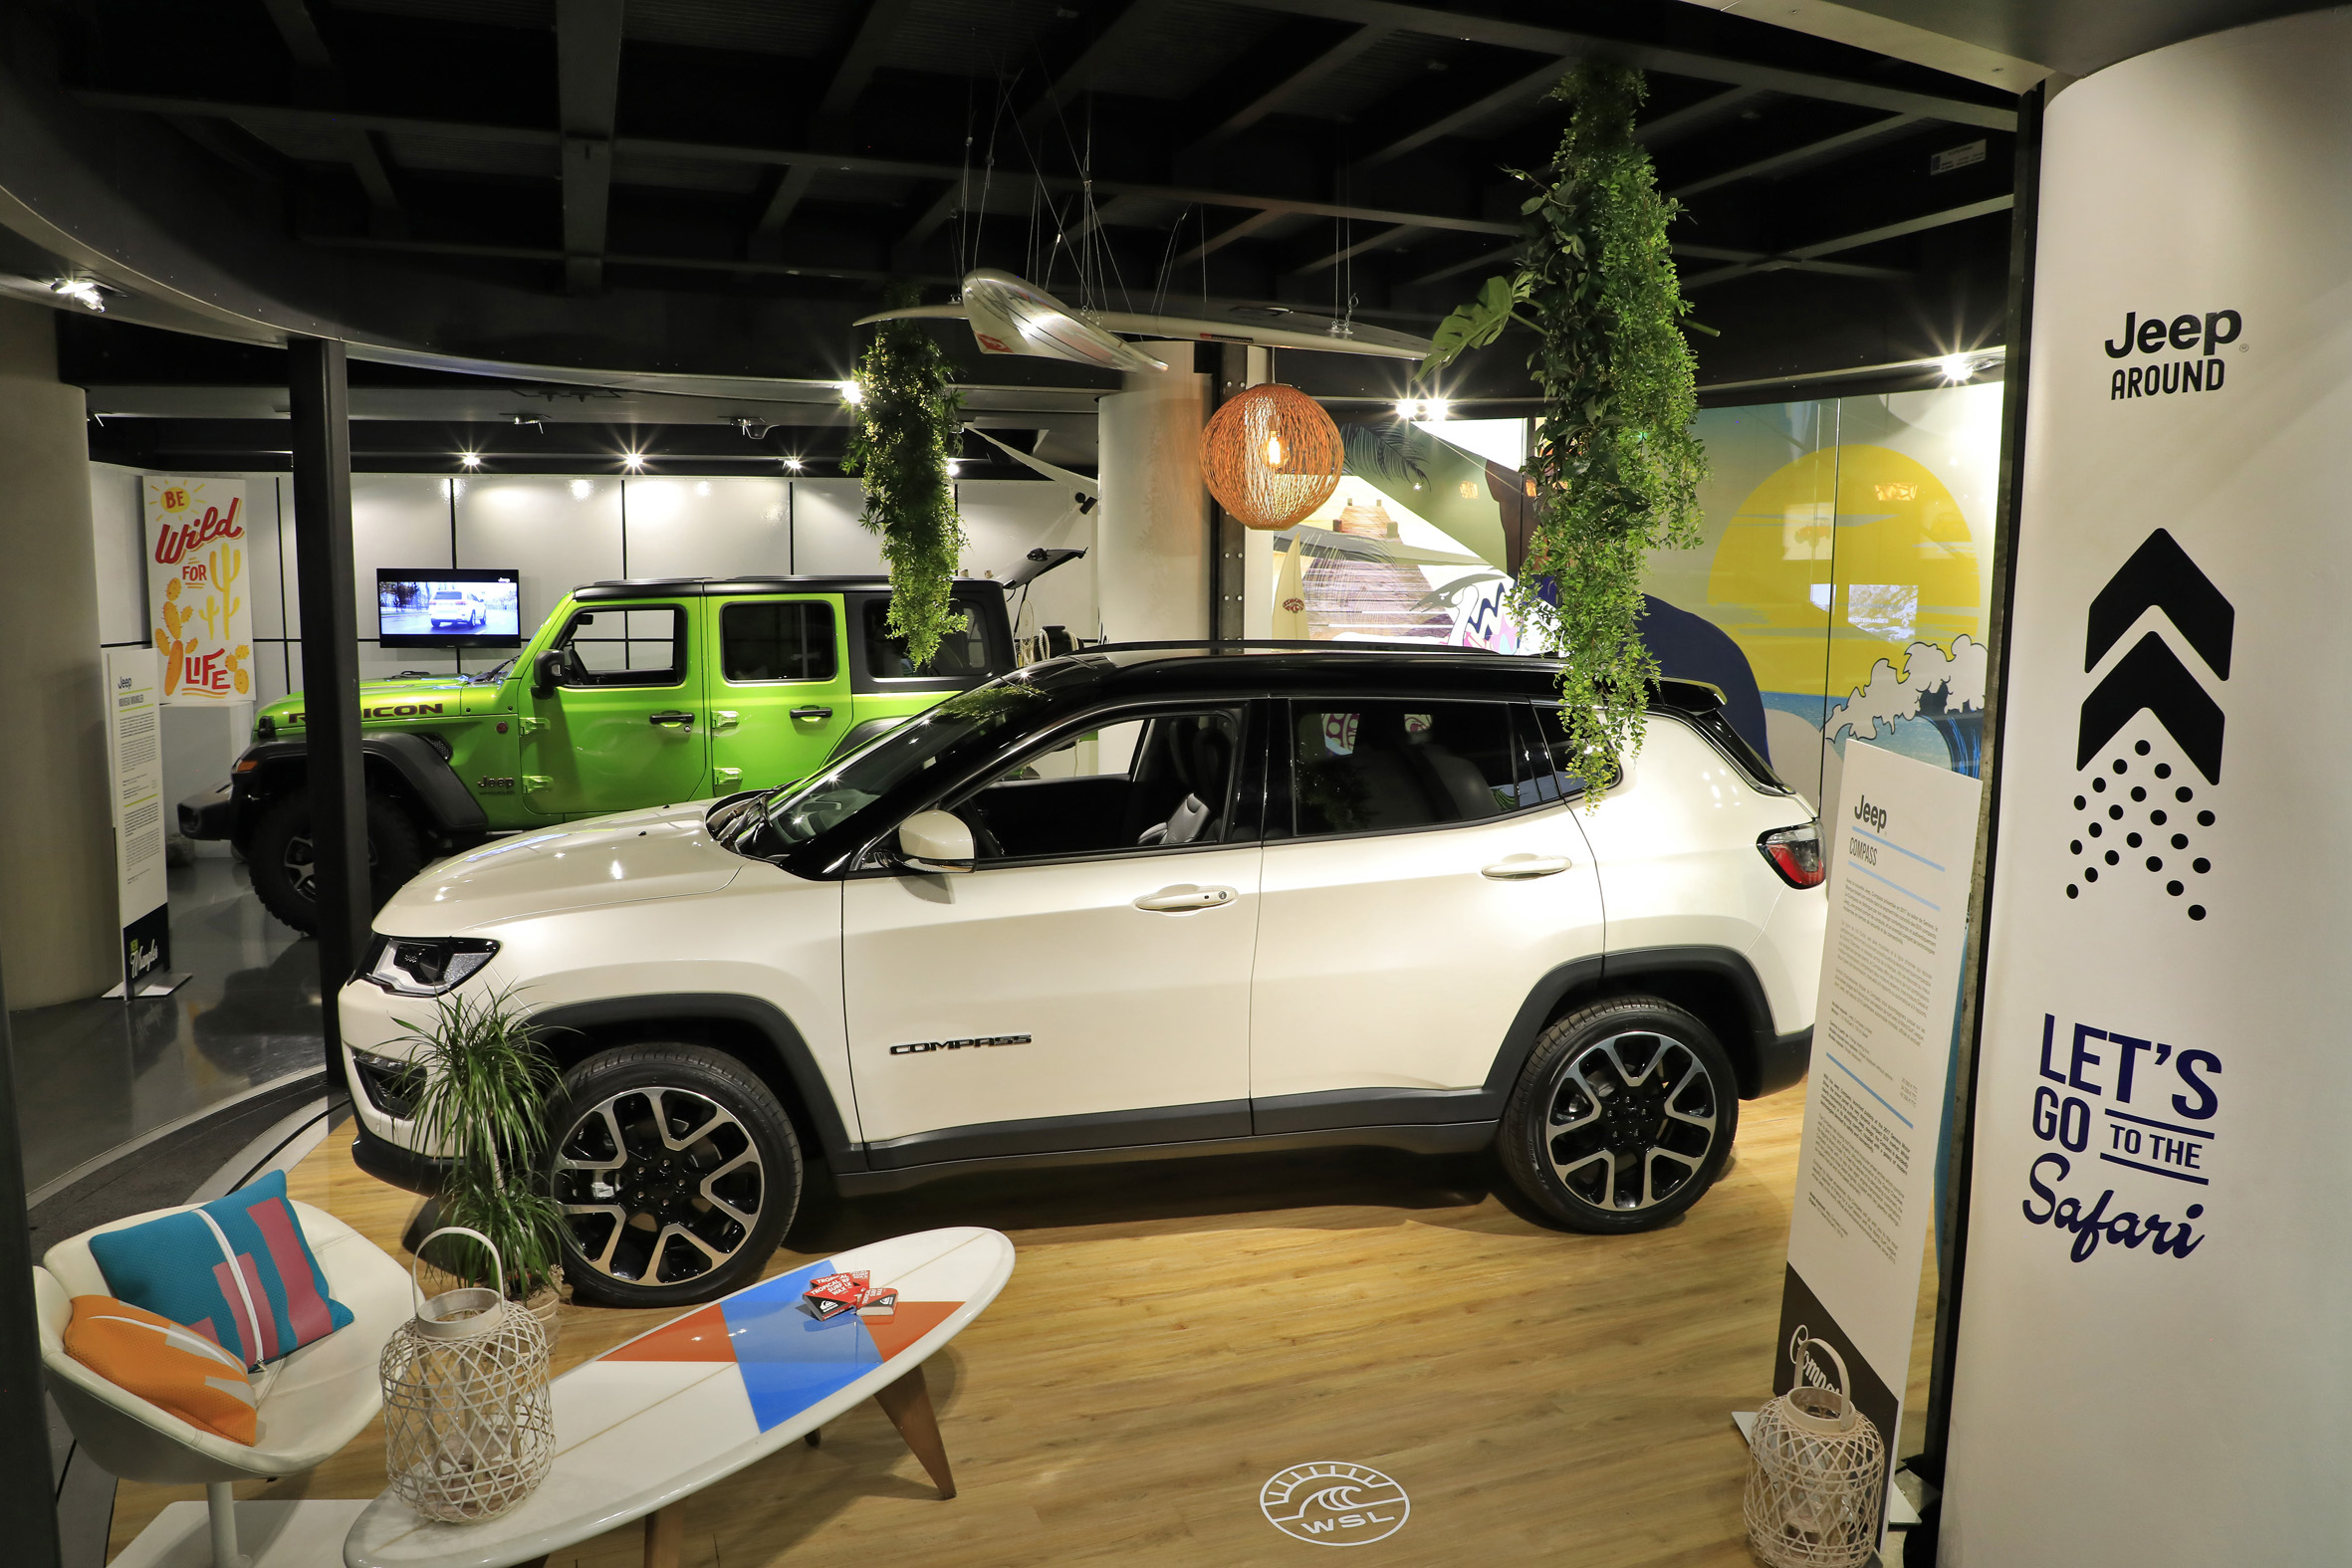 nouvelle exposition jeep around motorvillage champs elys es communiqu s de presse fiat. Black Bedroom Furniture Sets. Home Design Ideas